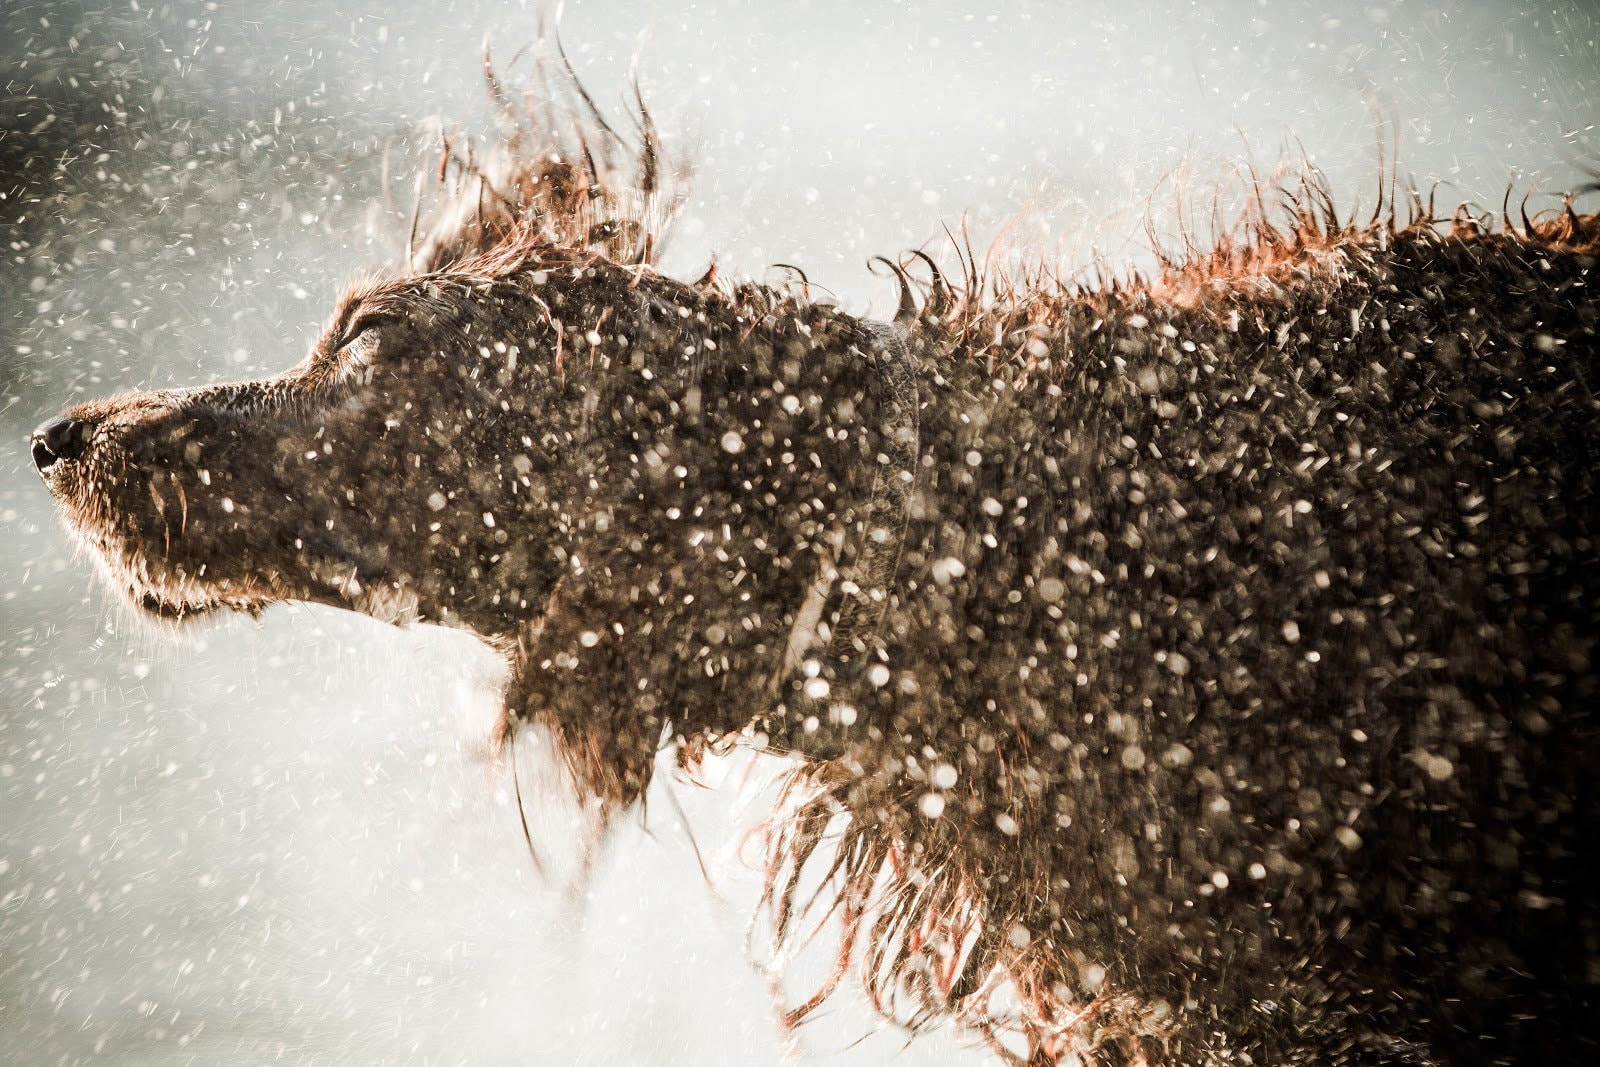 Dog shaking off water from its fur by Murucutu